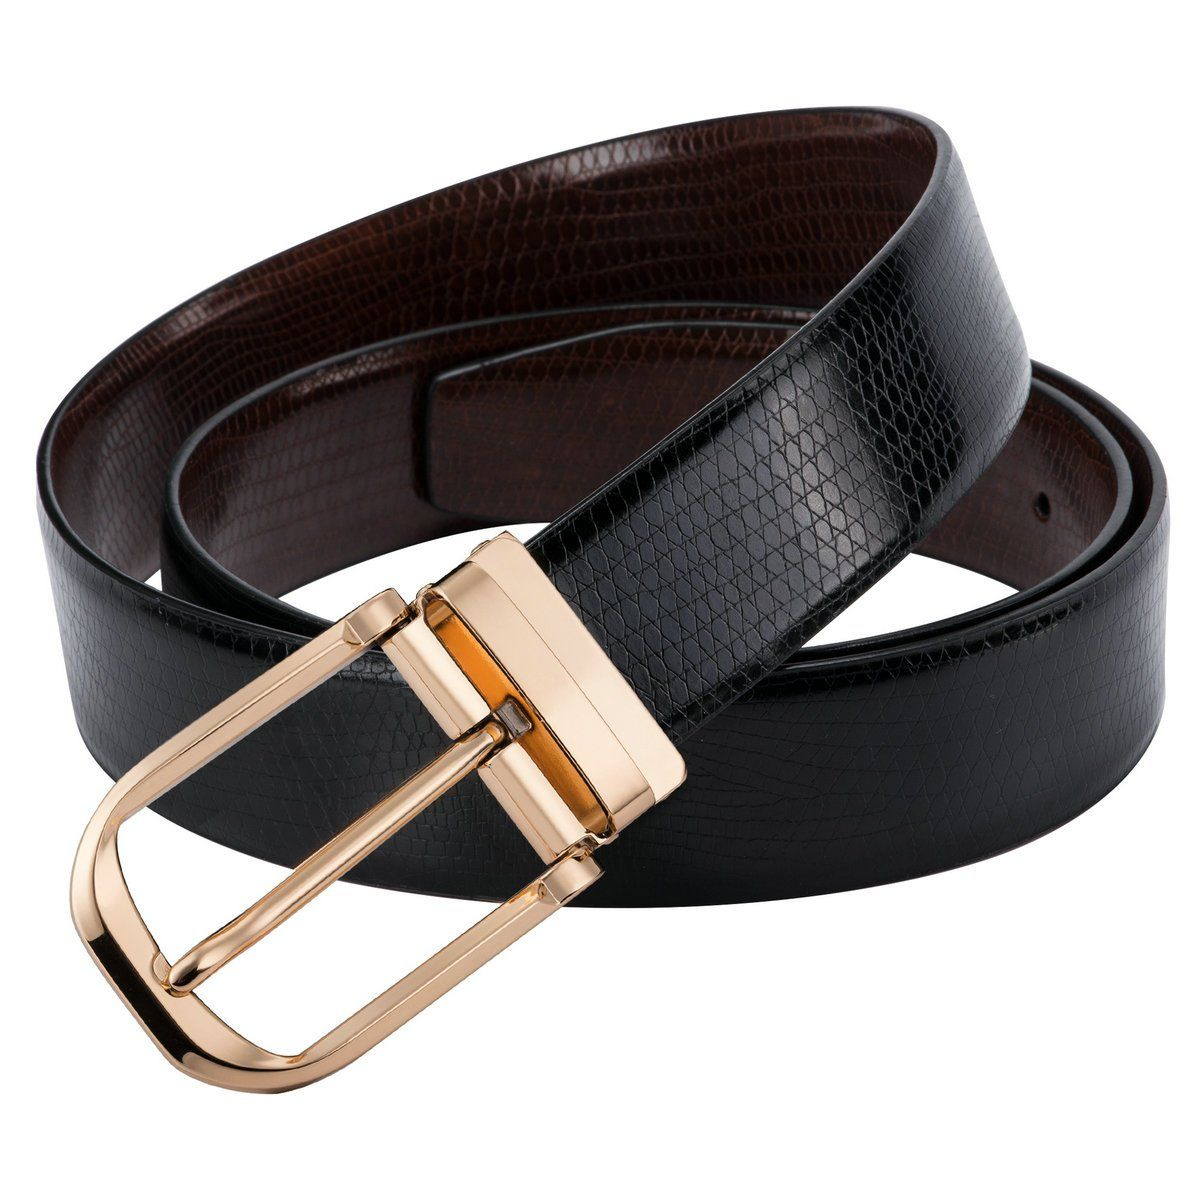 Barry.Wang Leather Casual Belts Black Pin Buckle Belts for Men